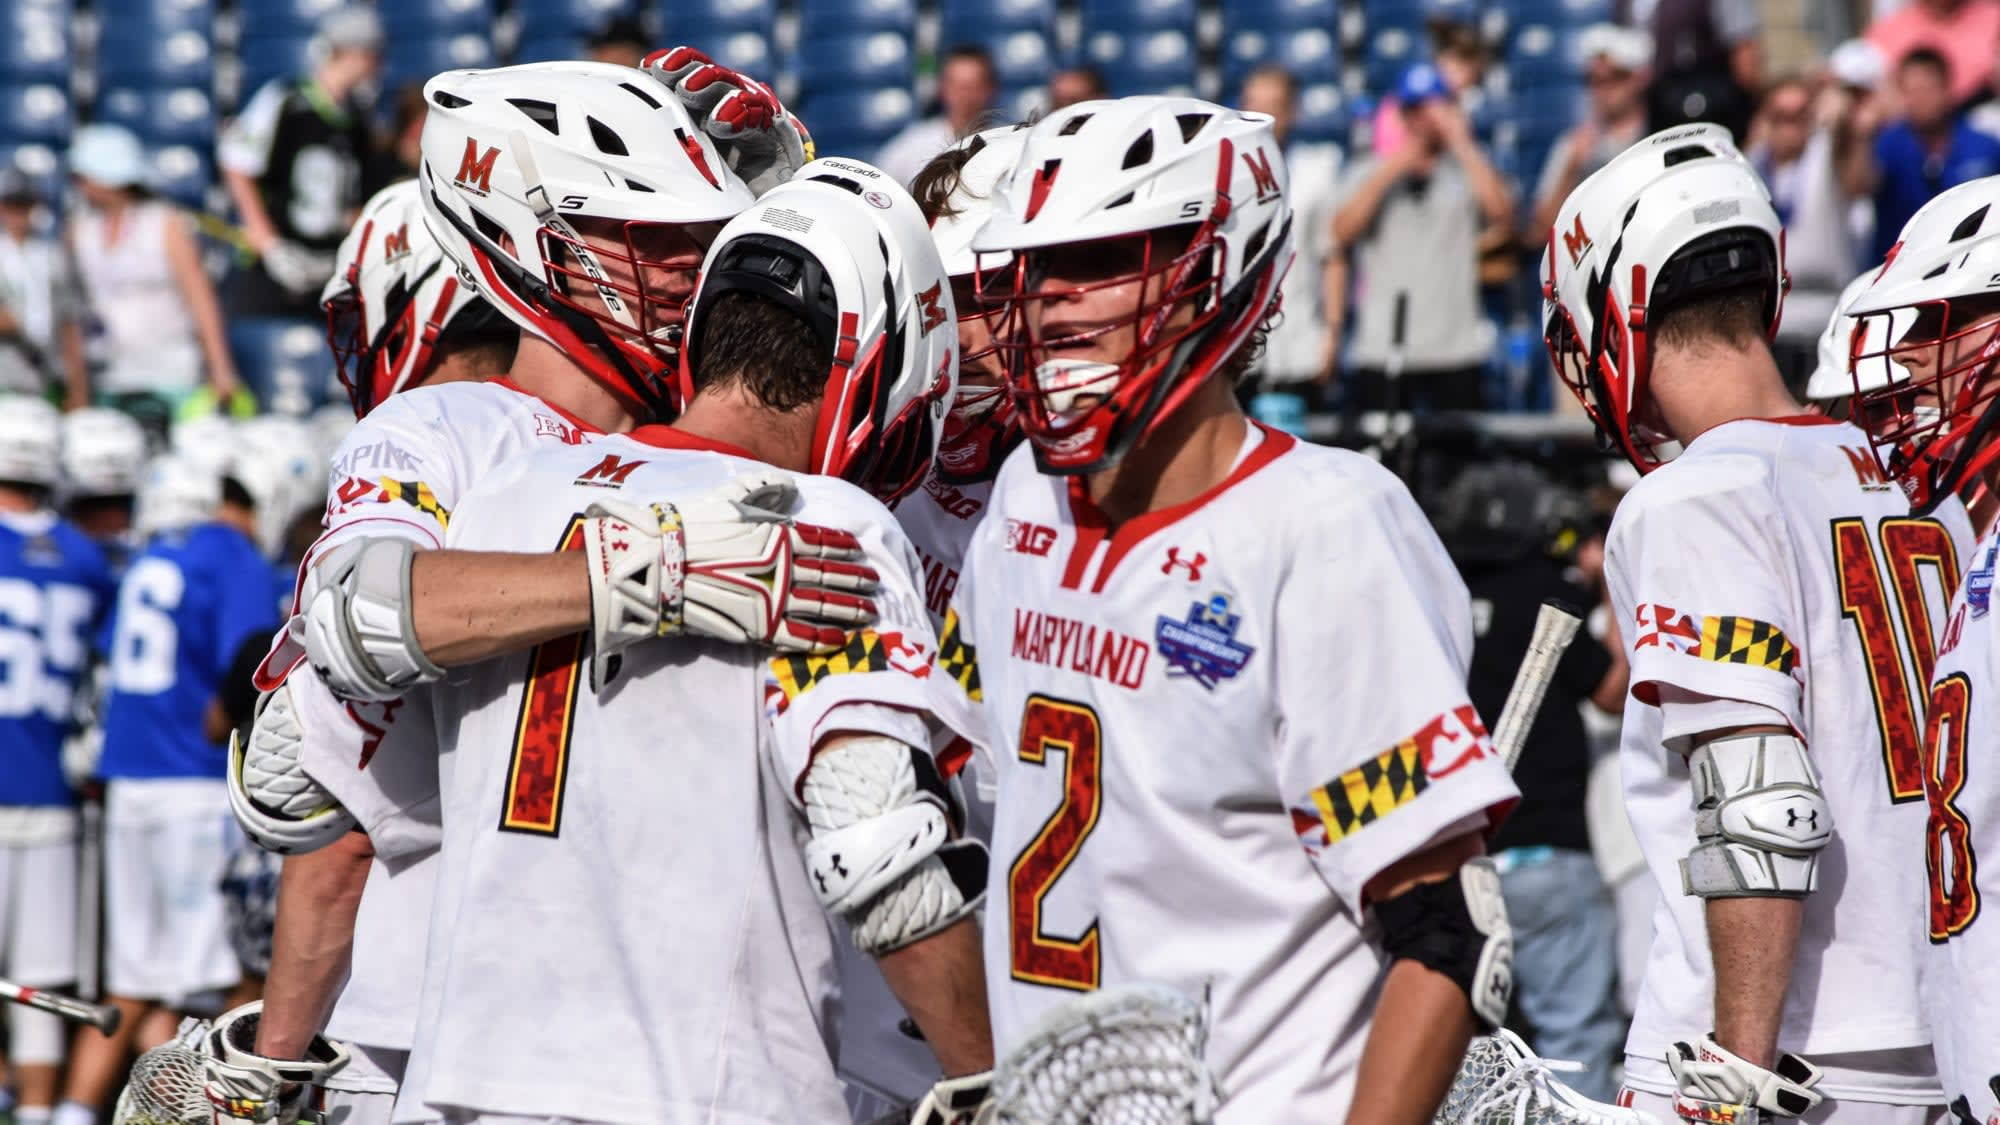 Duke vs Maryland 2018 NCAA Semifinals Ryan Conwell (32 of 32) ncaa conference comparison